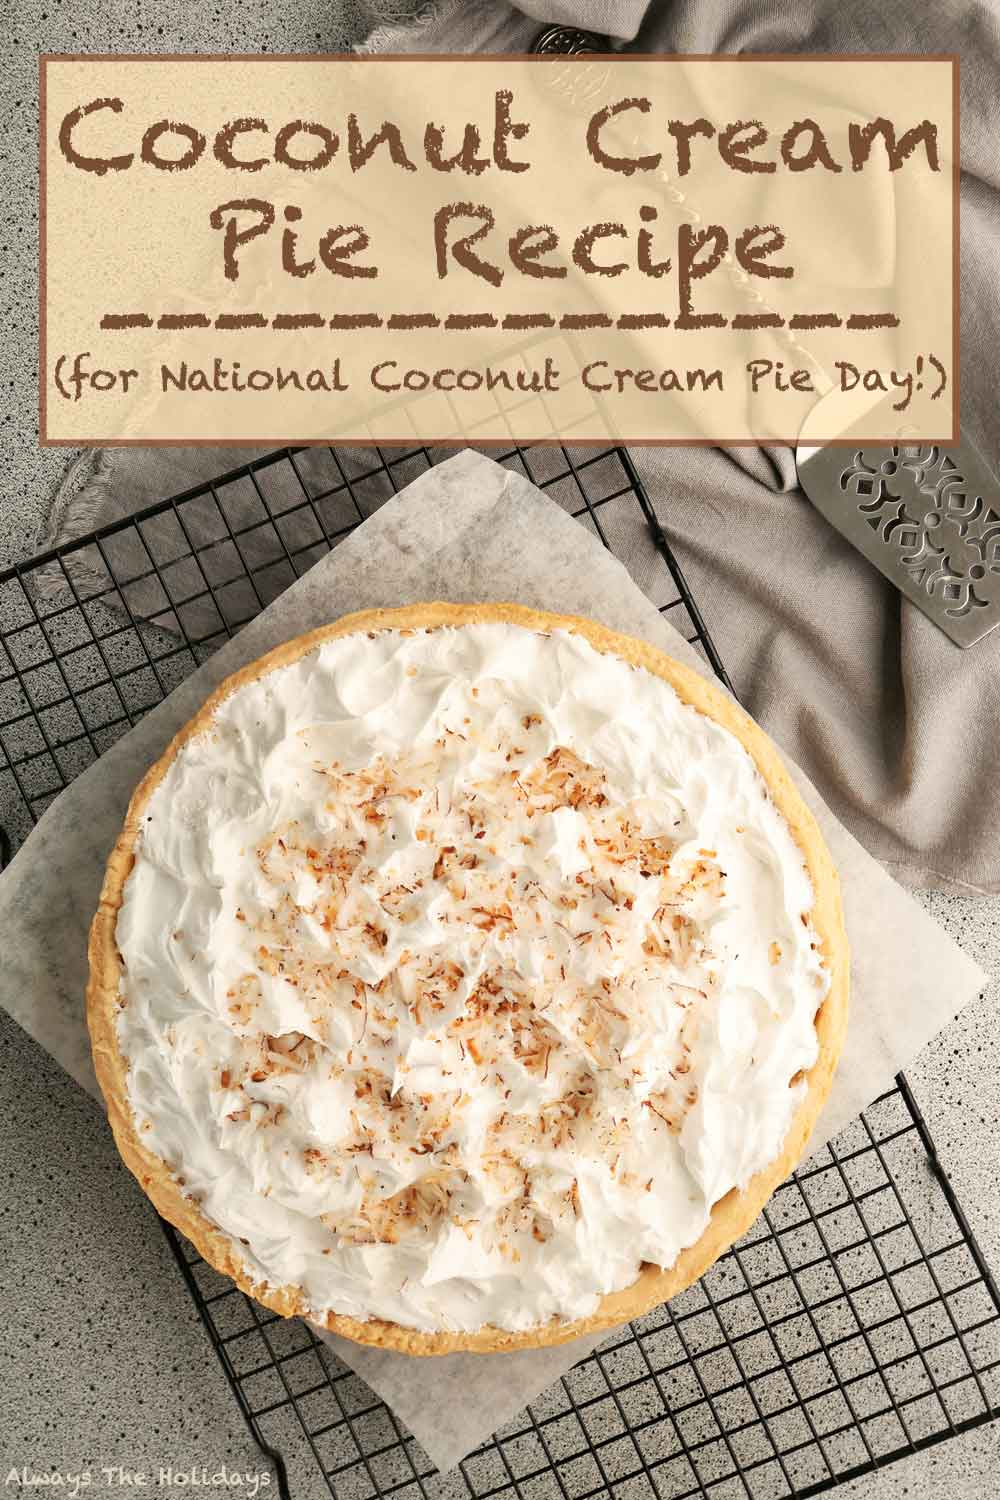 """A coconut cream pie on a drying rack with parchment paper under it and a text overlay that says """"coconut cream pie recipe for national coconut cream pie day""""."""